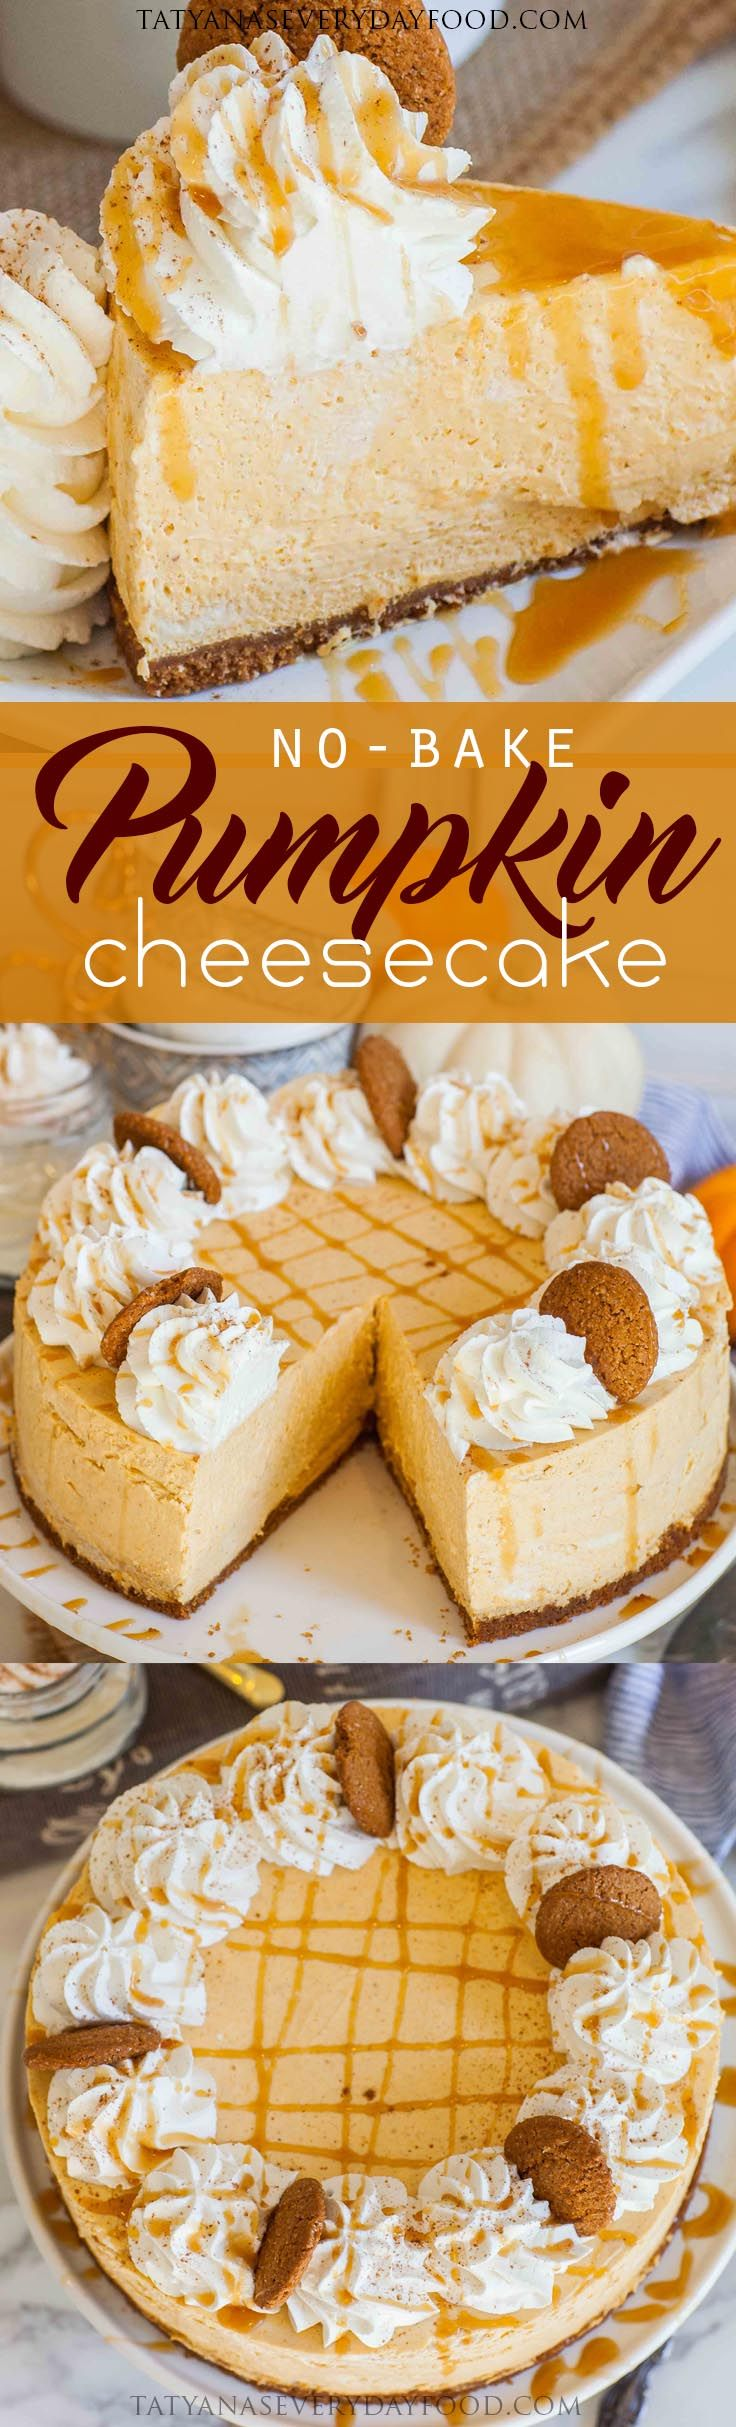 No Thanksgiving table is complete without a turkey, mashed potatoes, pies and pumpkin cheesecake! If your kitchen is anything like mine before the holidays, the oven is in use constantly, not leaving much time for cheesecake baking! My no-bake pumpkin cheesecake with a ginger snap cookie crust, whipped cream and caramel sauce is the best […]